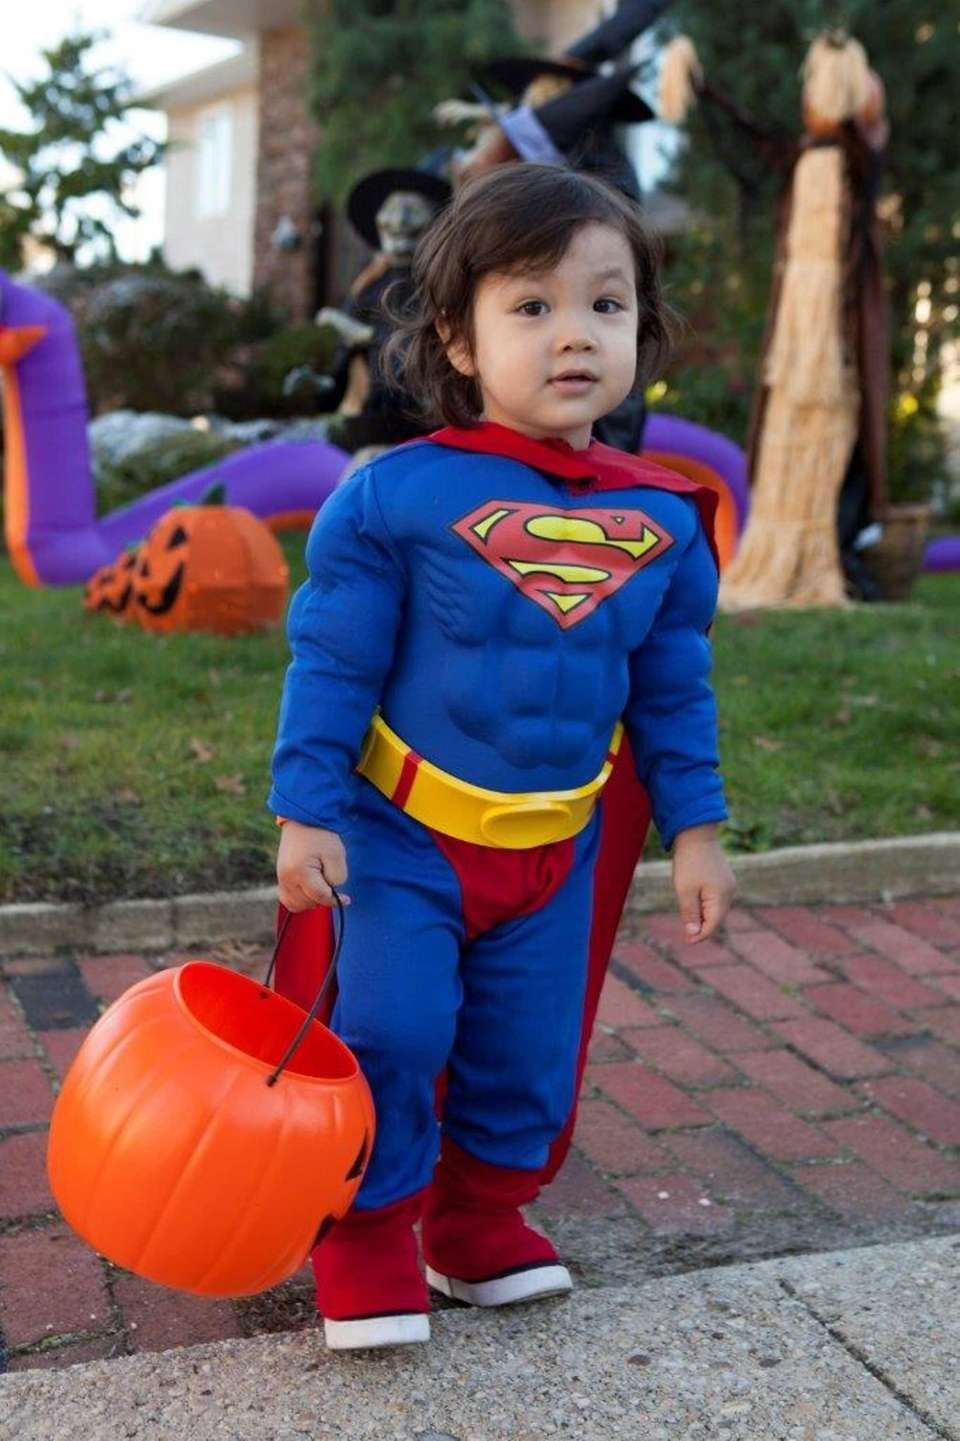 Our son Alex on his first Halloween in